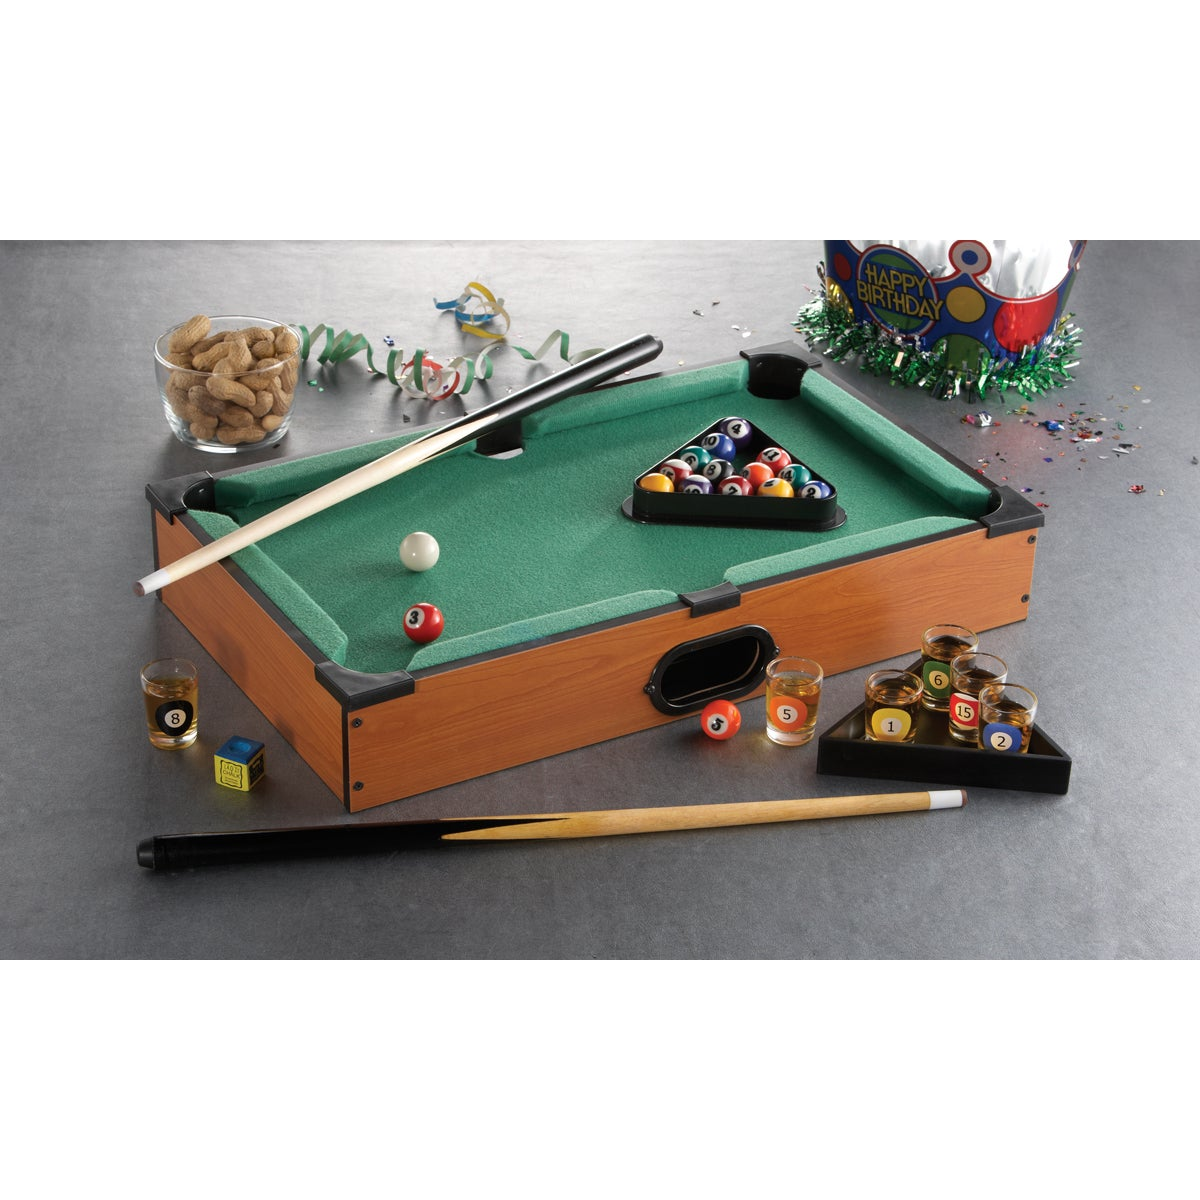 Game Night Table Top Pool